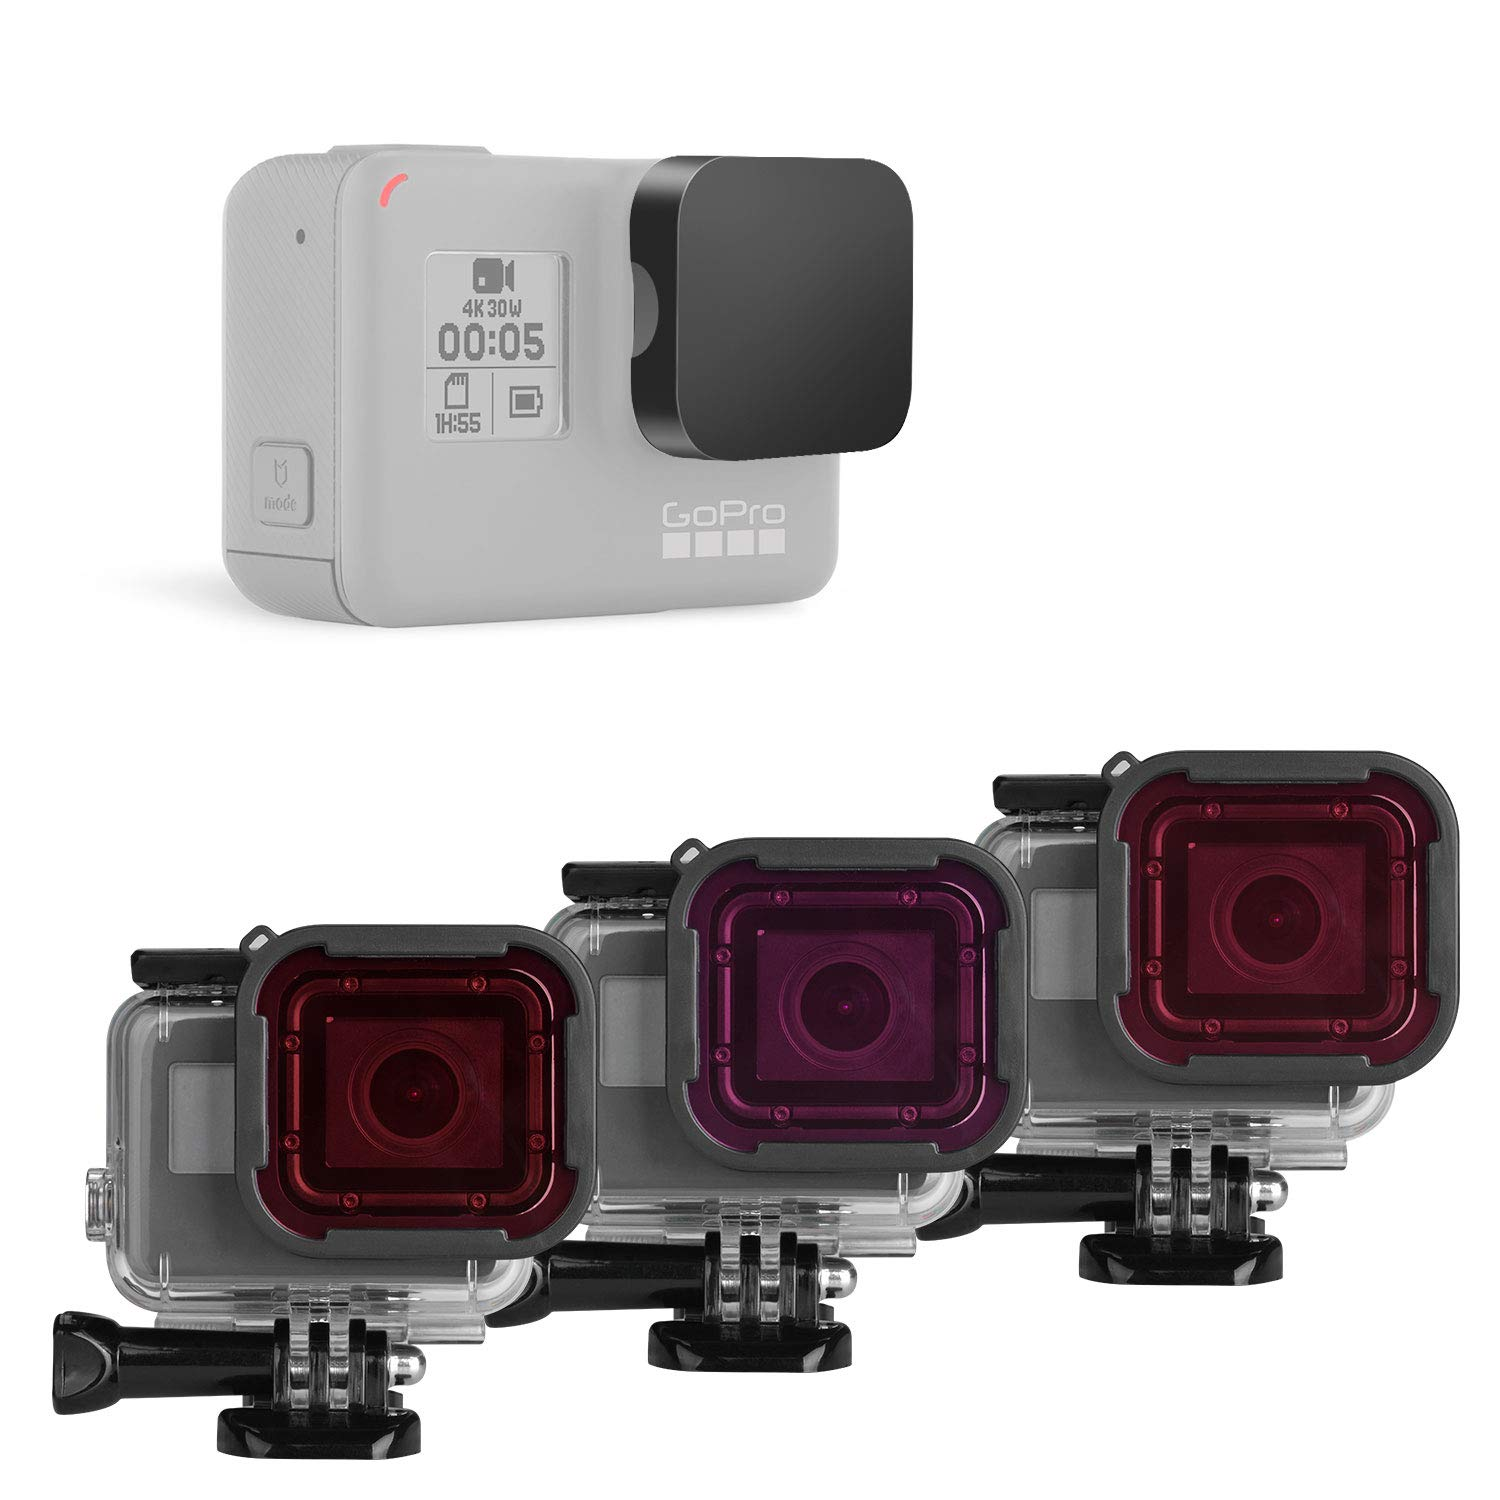 Red Light Red Magenta Color Correction Filter Compatible for GoPro Hero 7 6 5 Black Official Super Suit Housing for Tropical Blue Water Diving Underwater Scuba Photography 3in1 Dive Lens Filter Kit